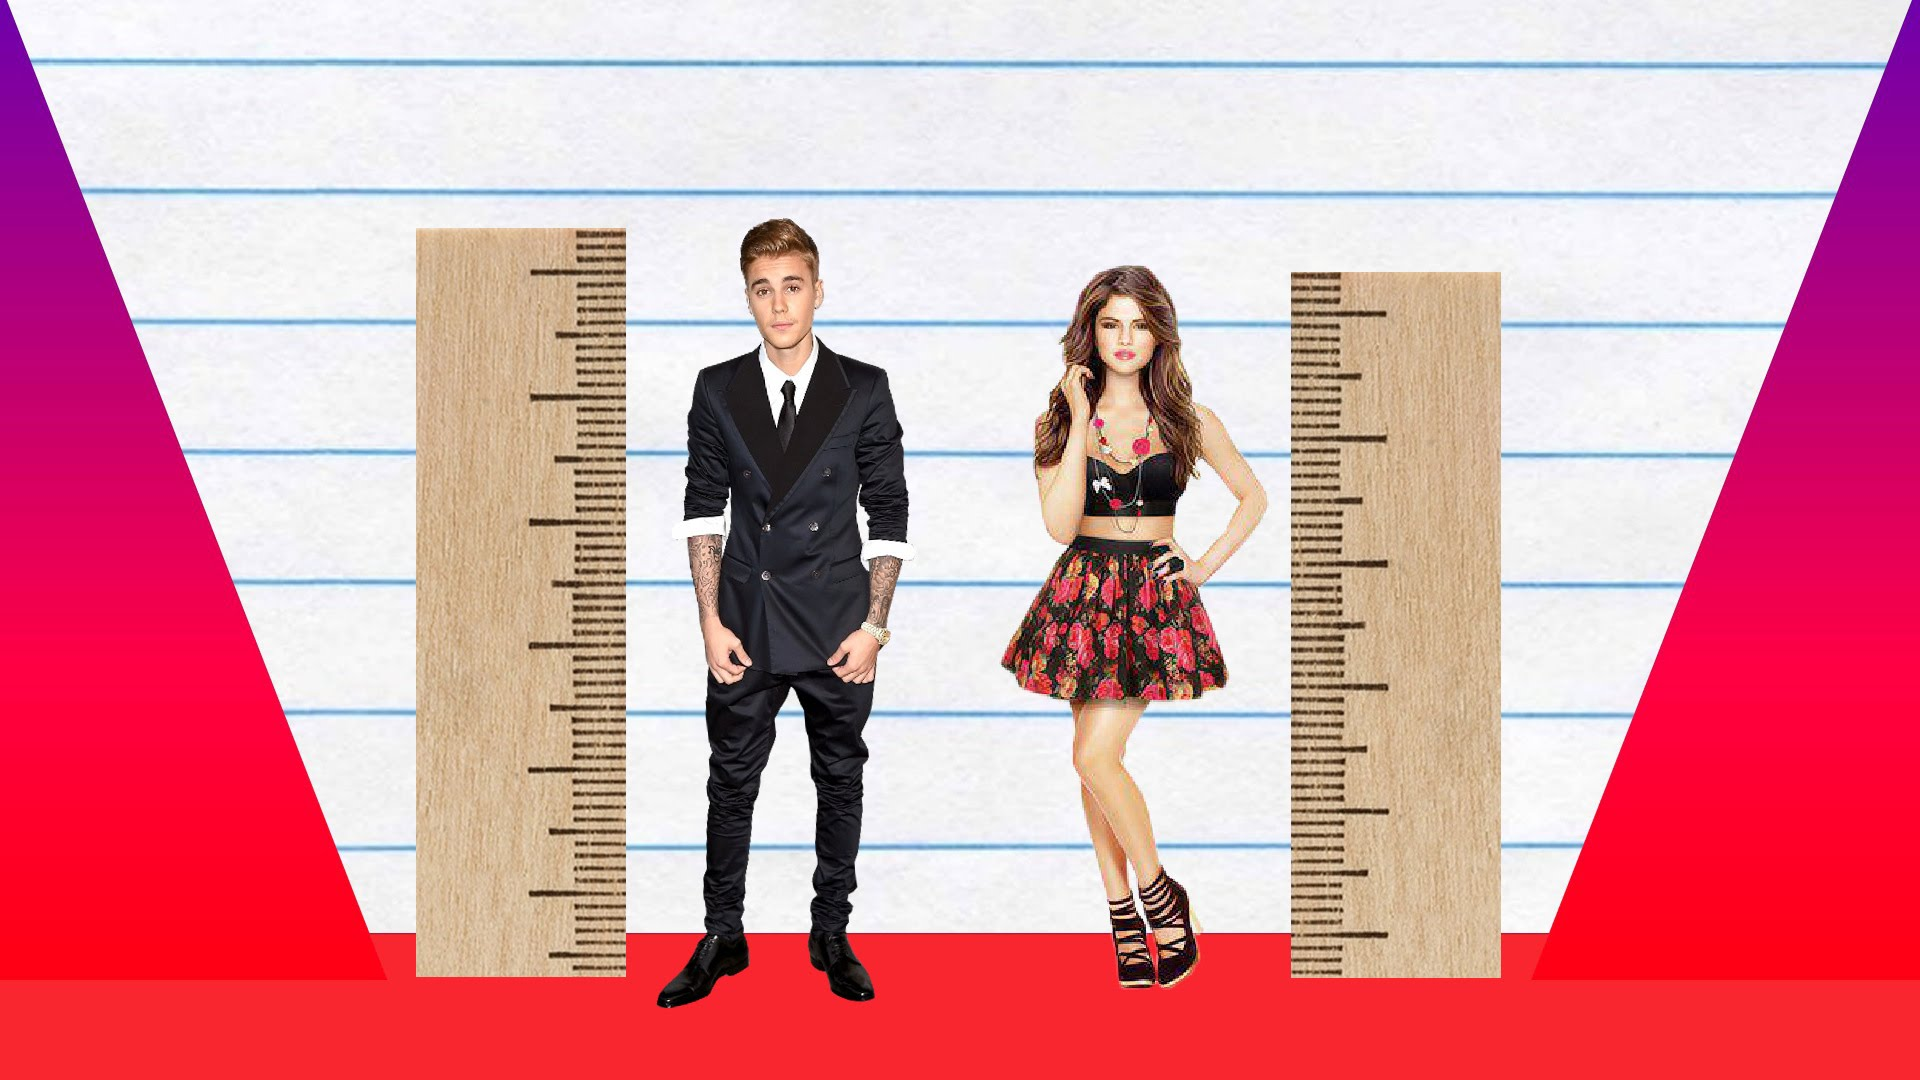 Justin Bieber height elevator shoes